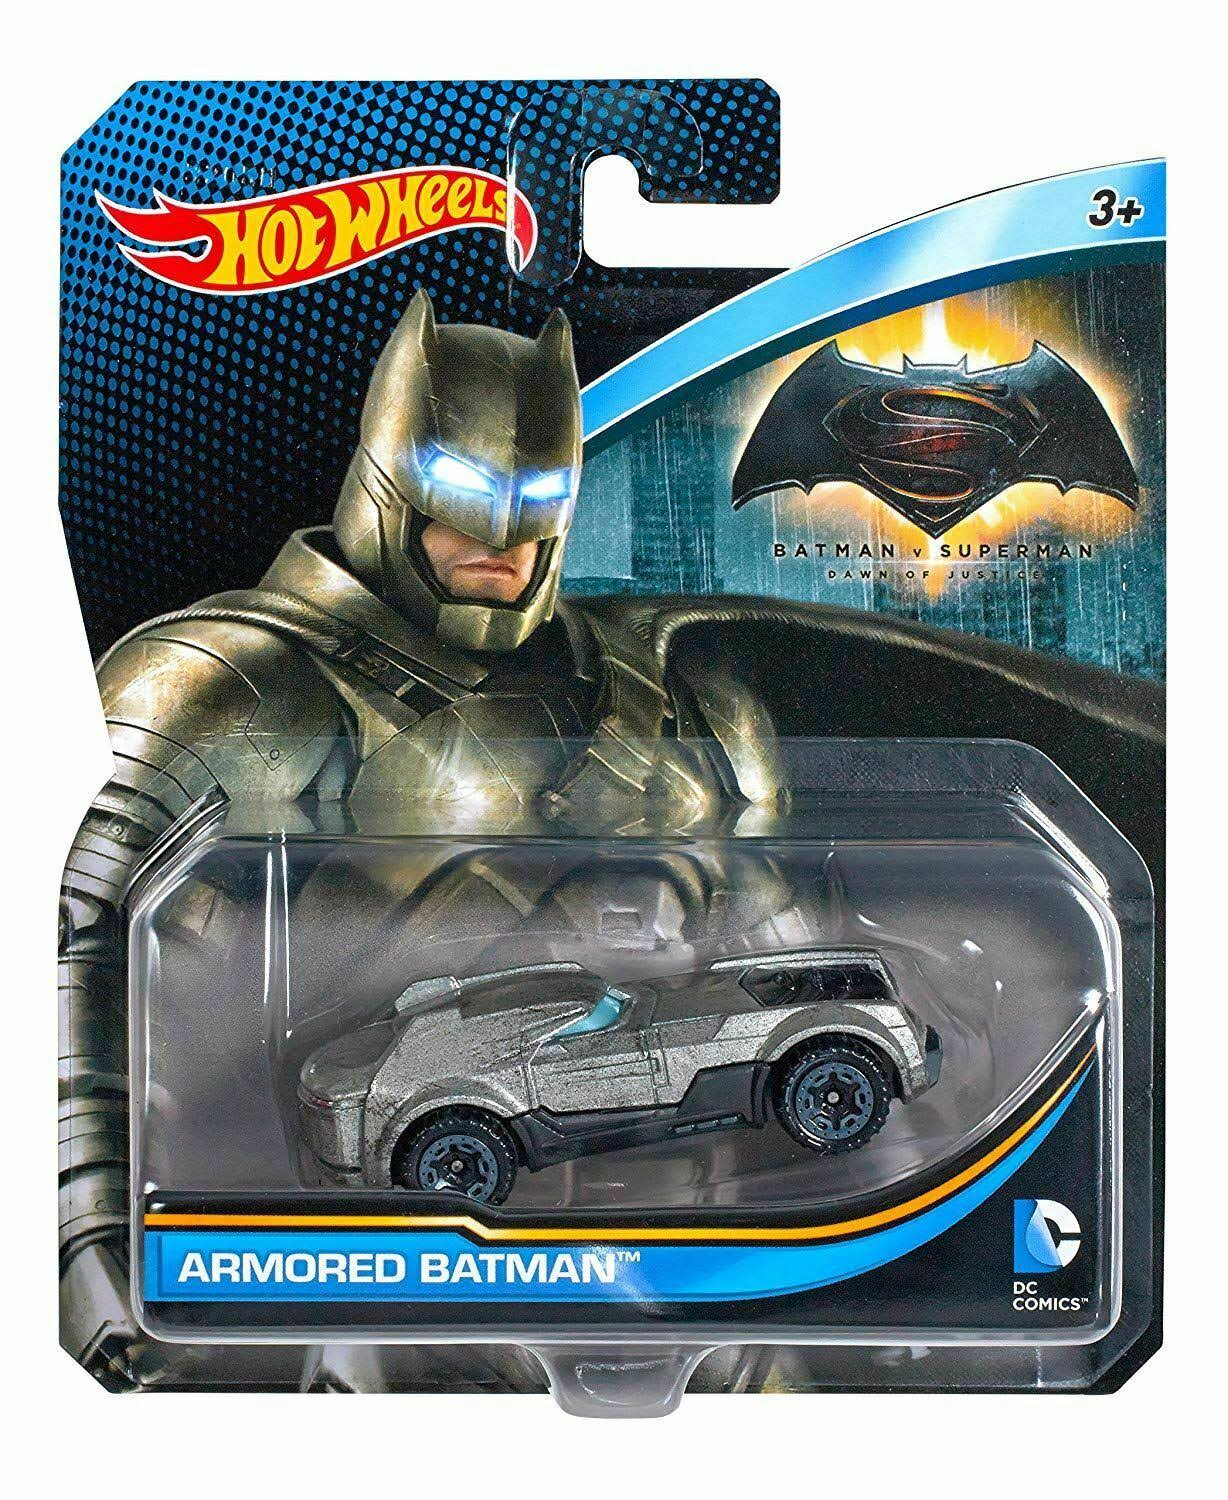 Hot Wheels DC Universe Armored Batman Toy Vehicle